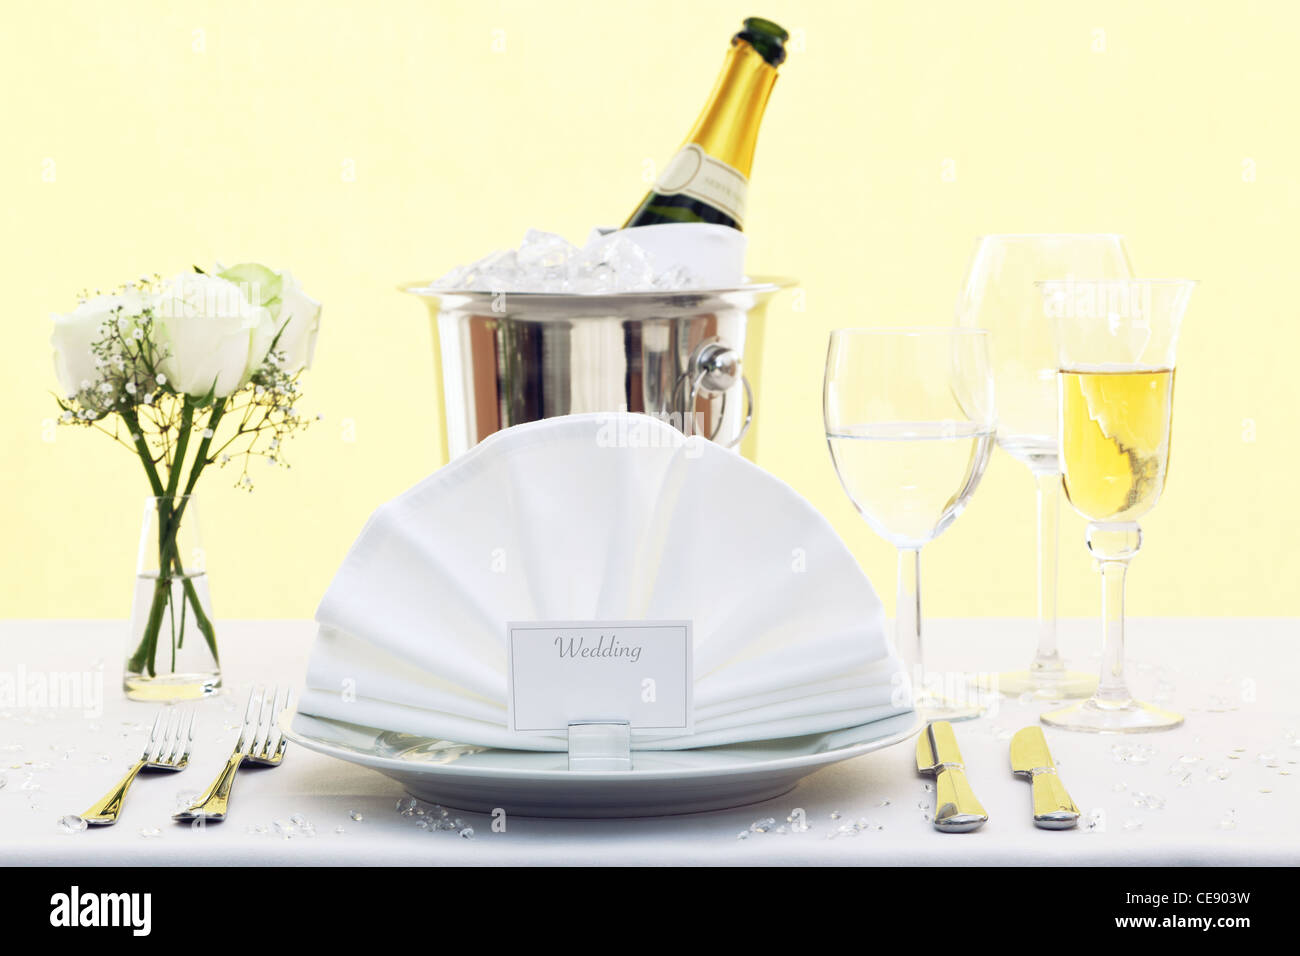 Photo of a wedding table place setting with place card and a bottle of chilled champagne in an ice bucket. - Stock Image